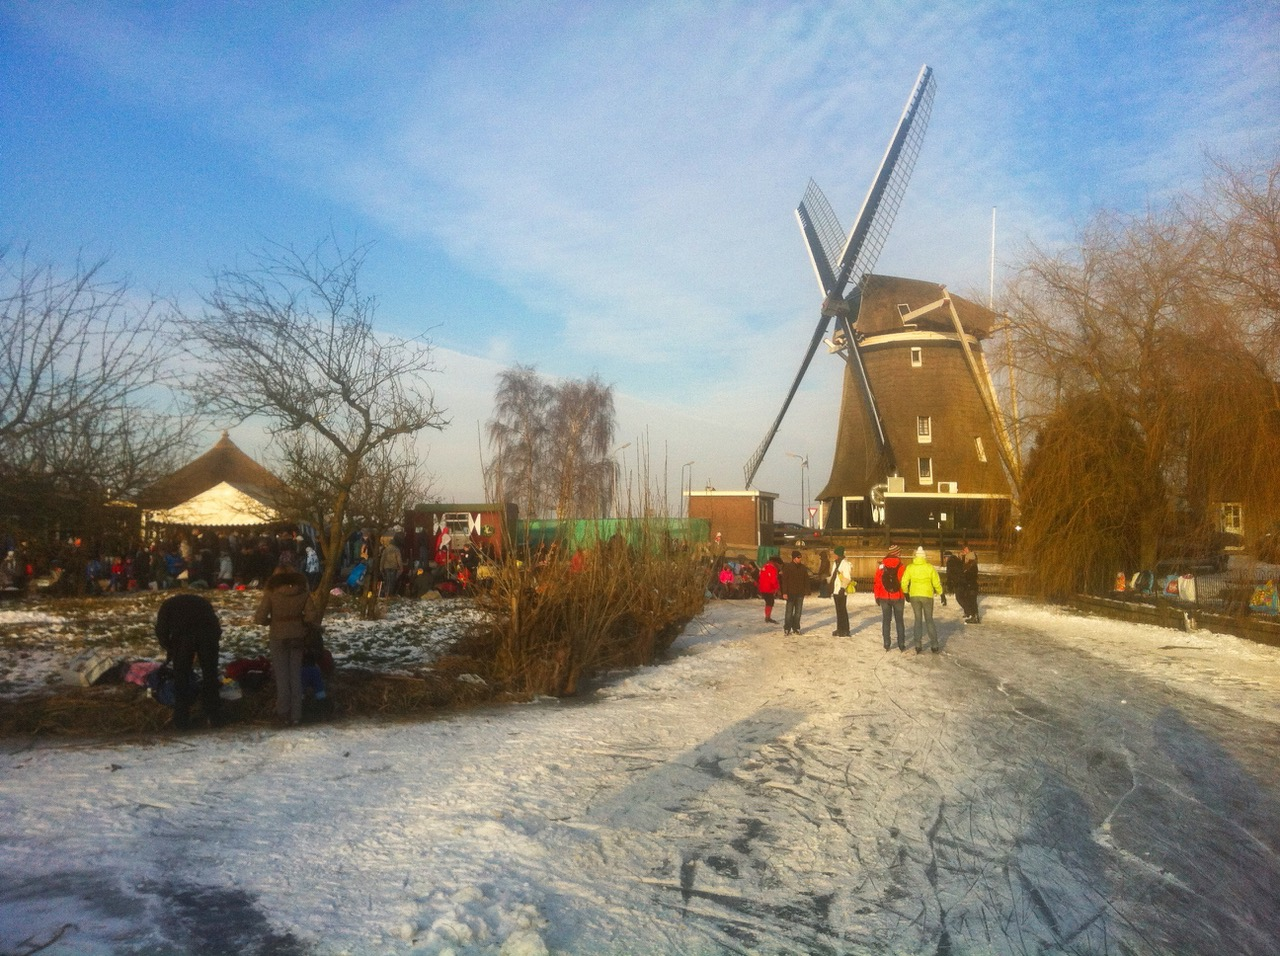 Ice skating in The Netherlands, wind mill